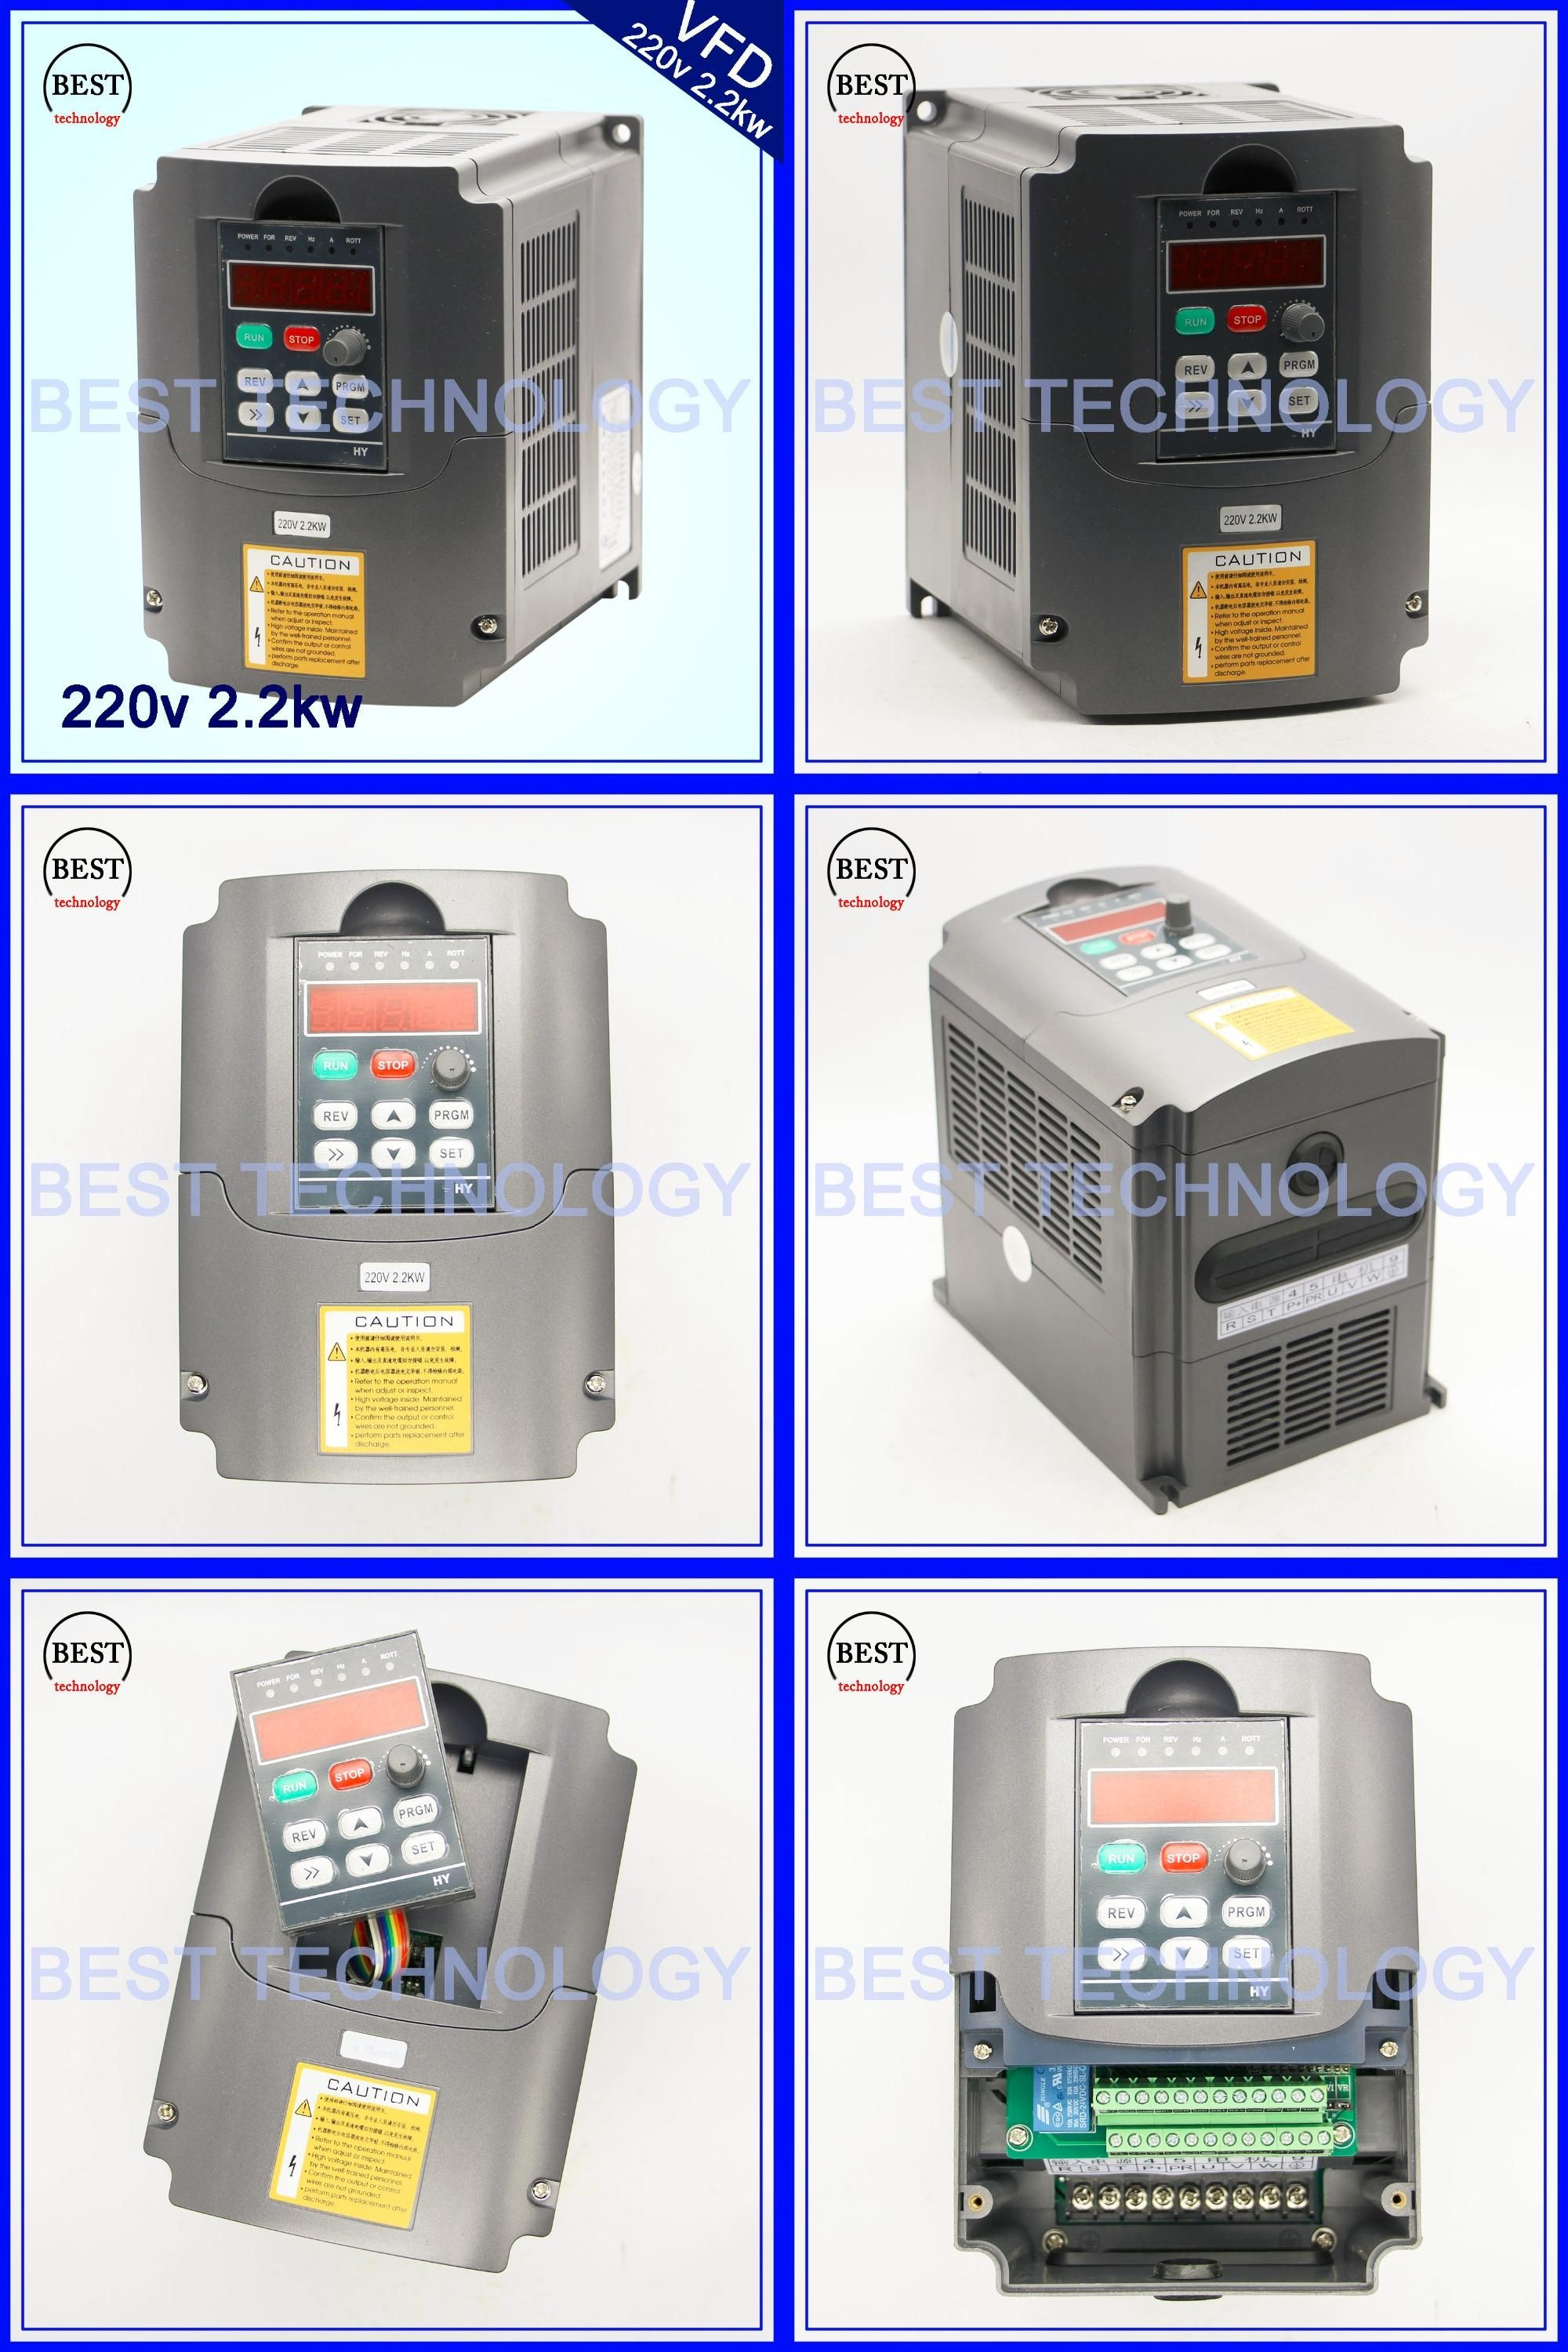 Visit To Buy Cnc Spindle Motor Speed Control 220v 22kw Vfd Variable Frequency Drive Electronics Hobby